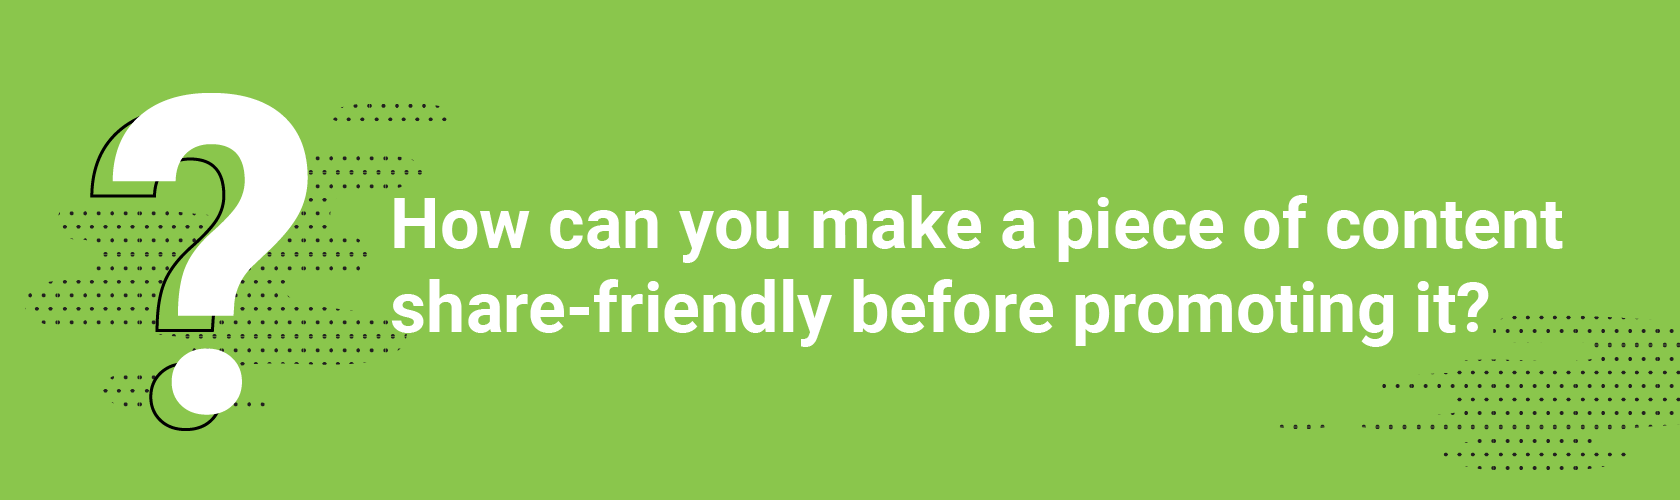 How can you make a piece of content share-friendly before promoting it? #semrushchat